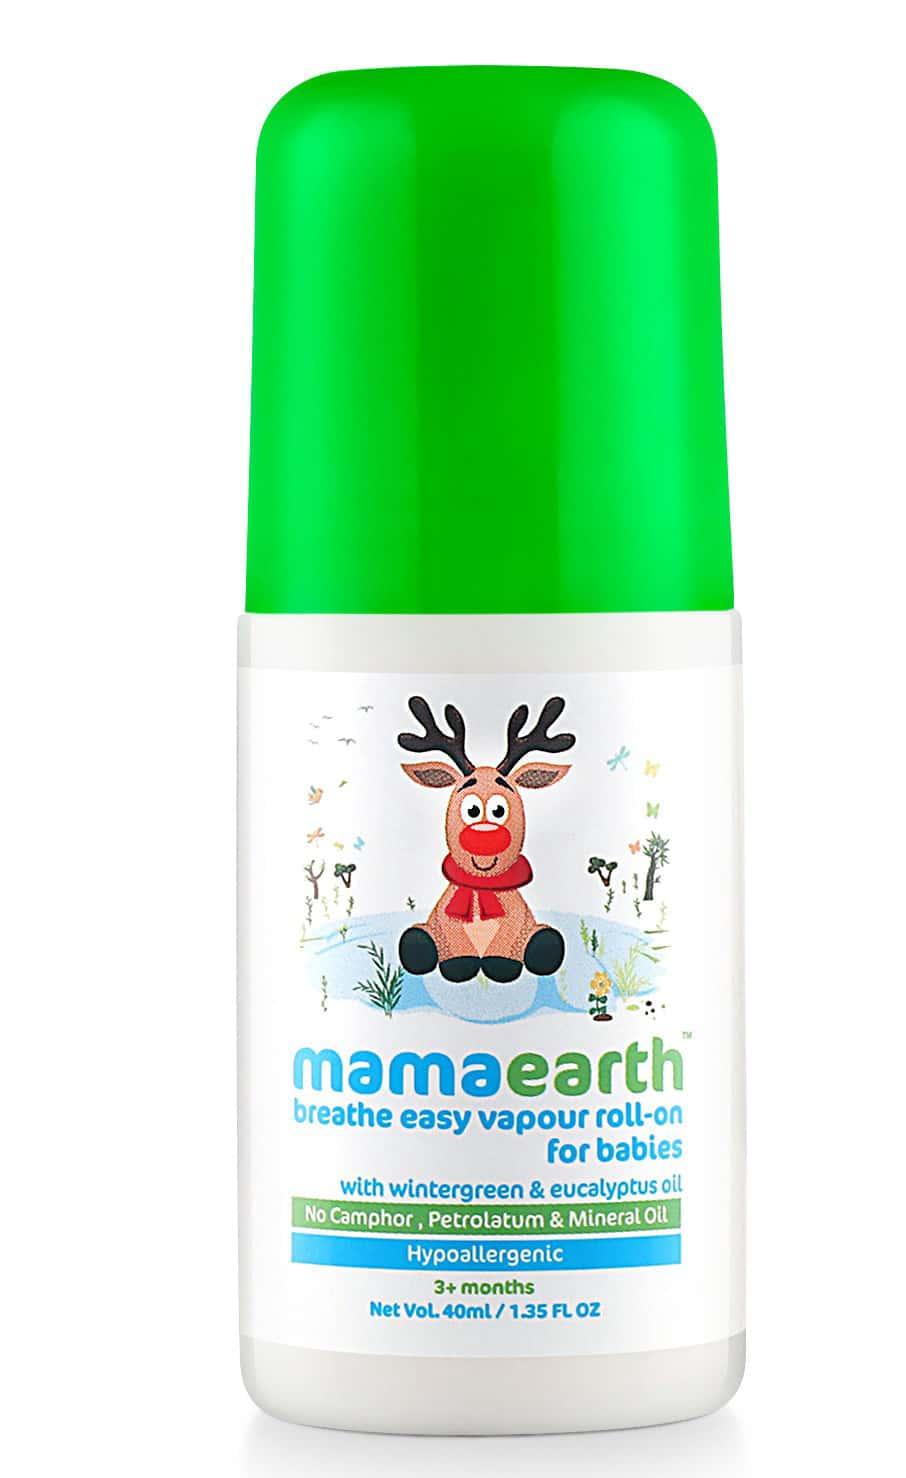 Mamaearth's Natural Breathe Easy Cold & Cough Roll-on Tube Of 40 Ml